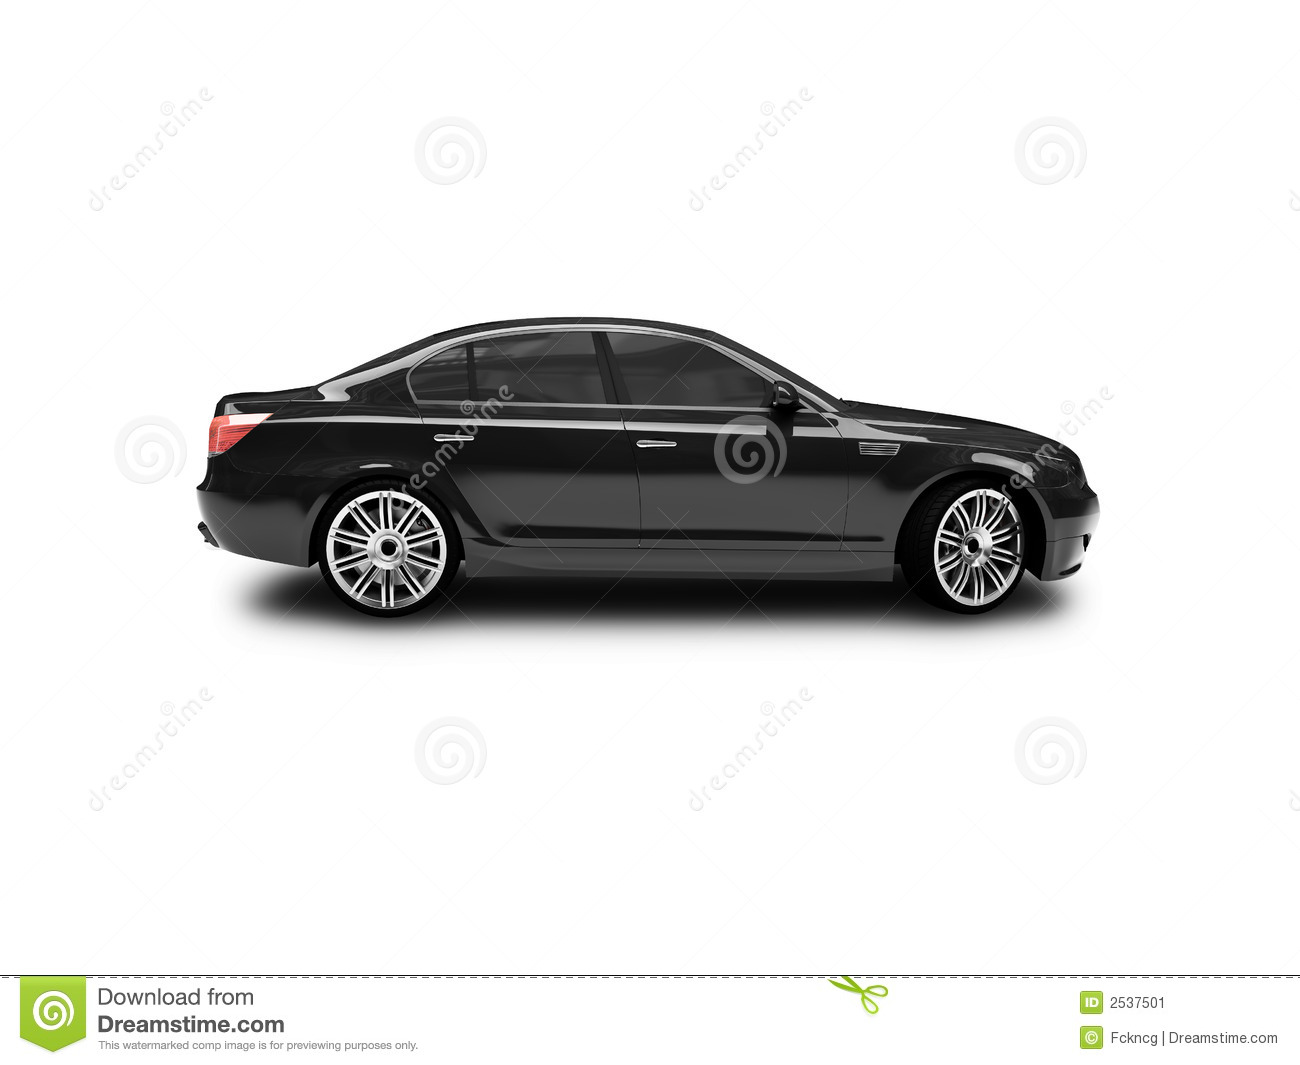 Audio Car Wallpaper Download Isolated Black Car Side View Stock Image Image 2537501